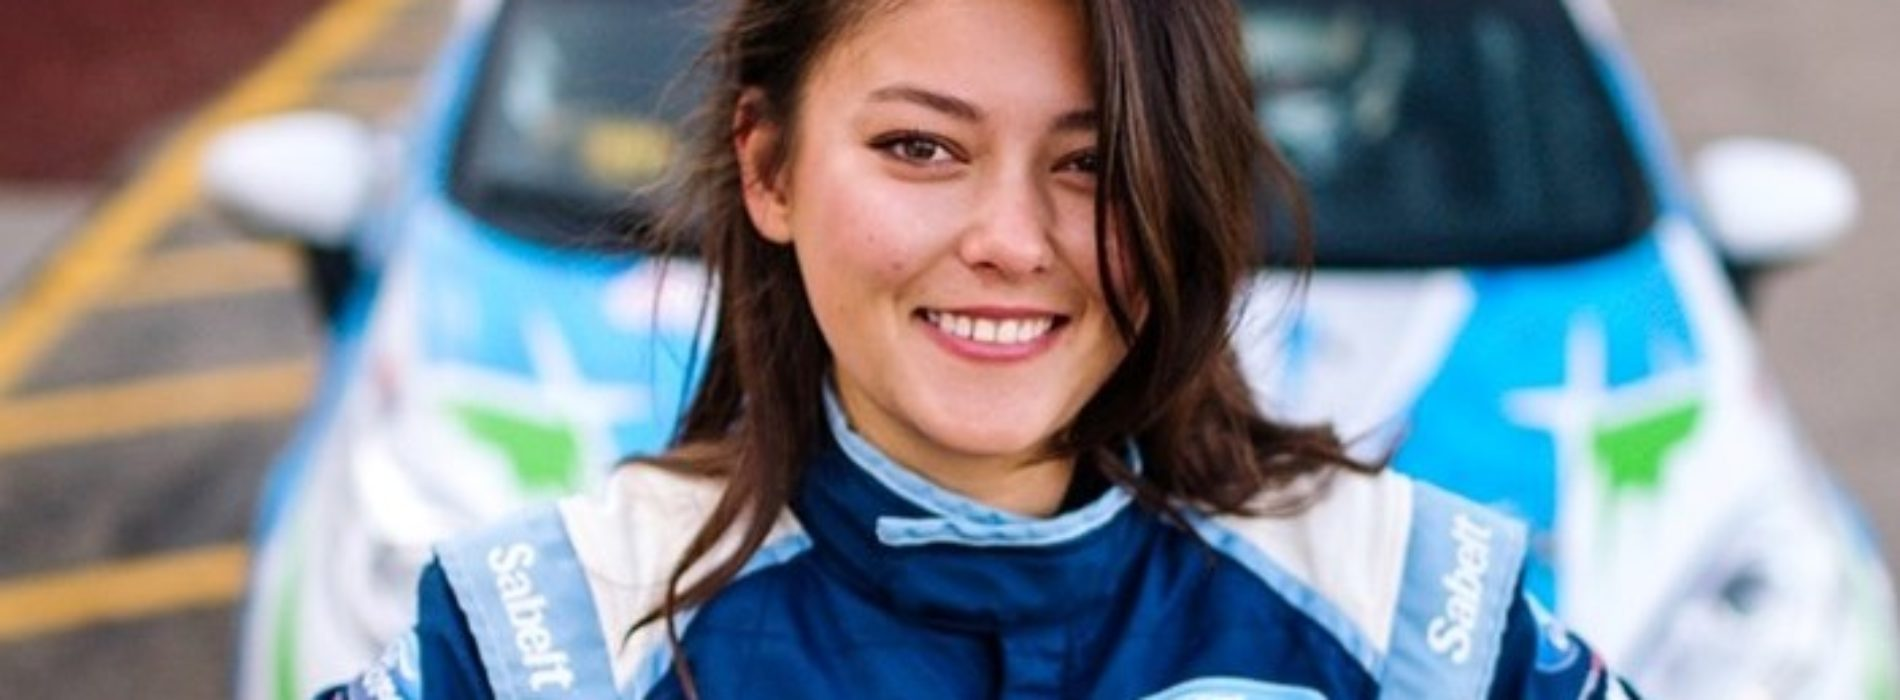 Keanna Erickson-Chang 2019 stage Rally season: driver and co-driver partnership, pace-notes and working with students-Part Two